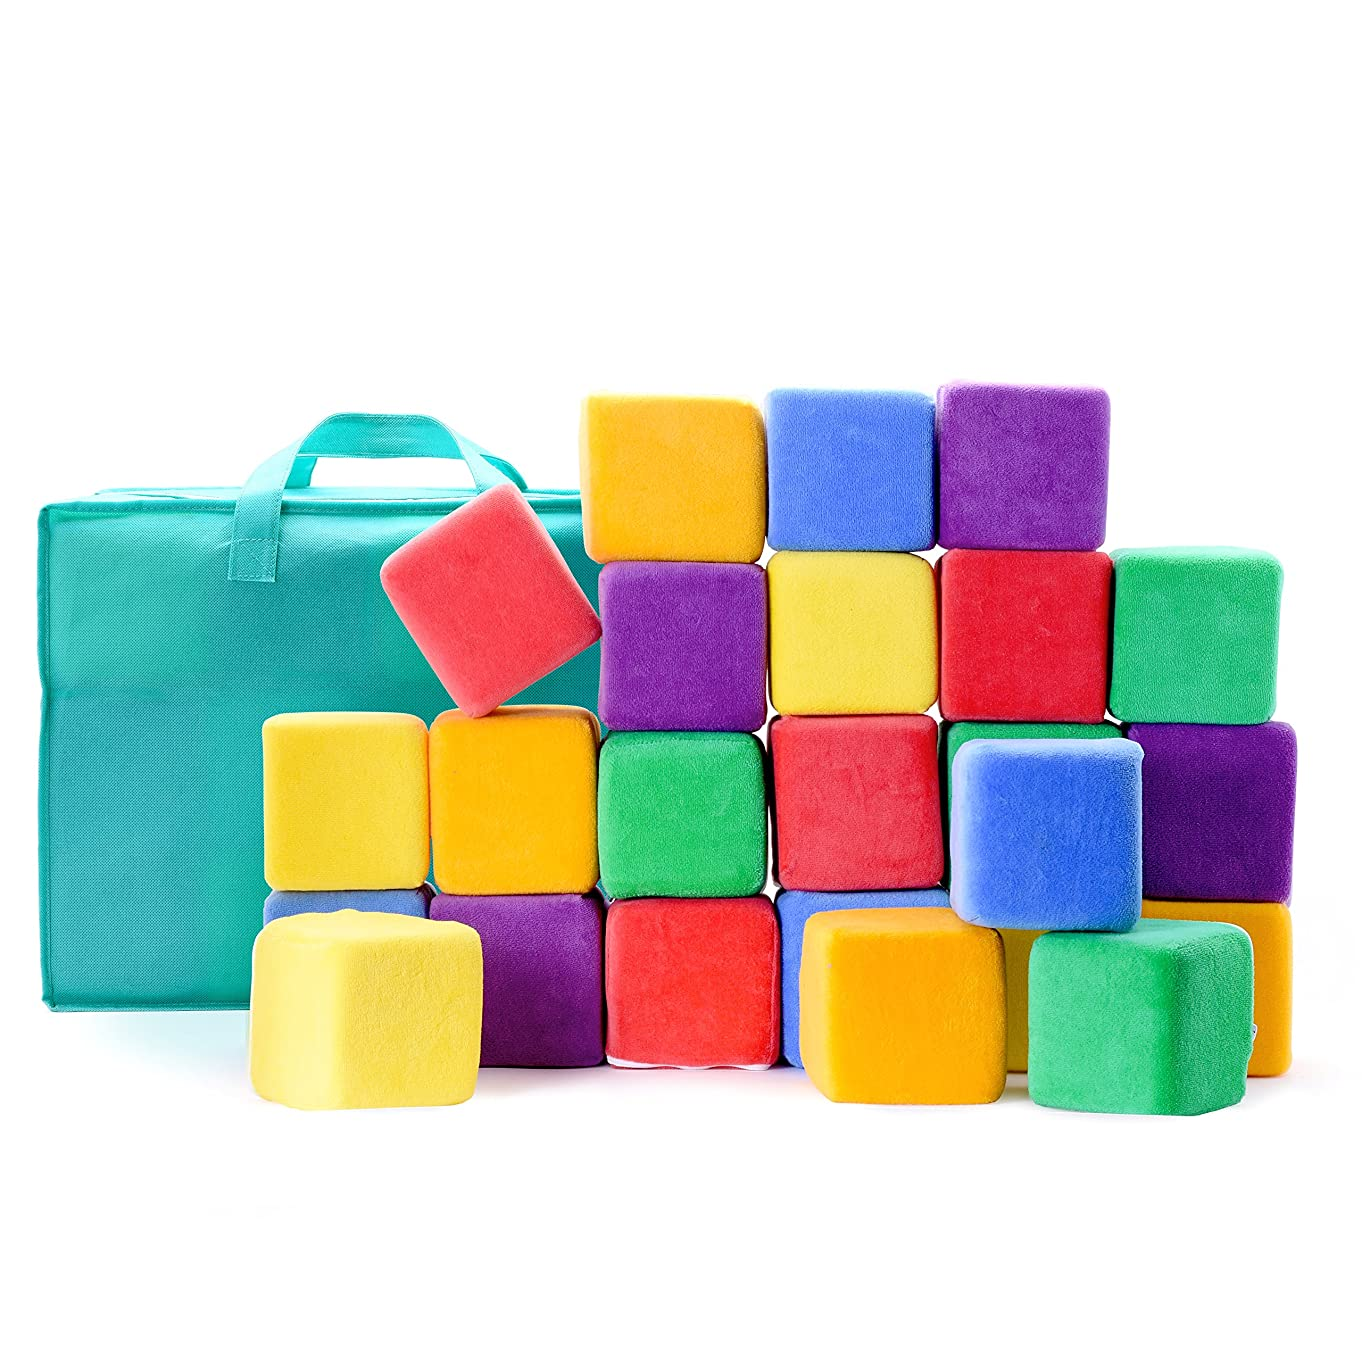 Milliard Soft Foam Blocks, Jumbo Size, for Stacking Sorting and Building, 24 4